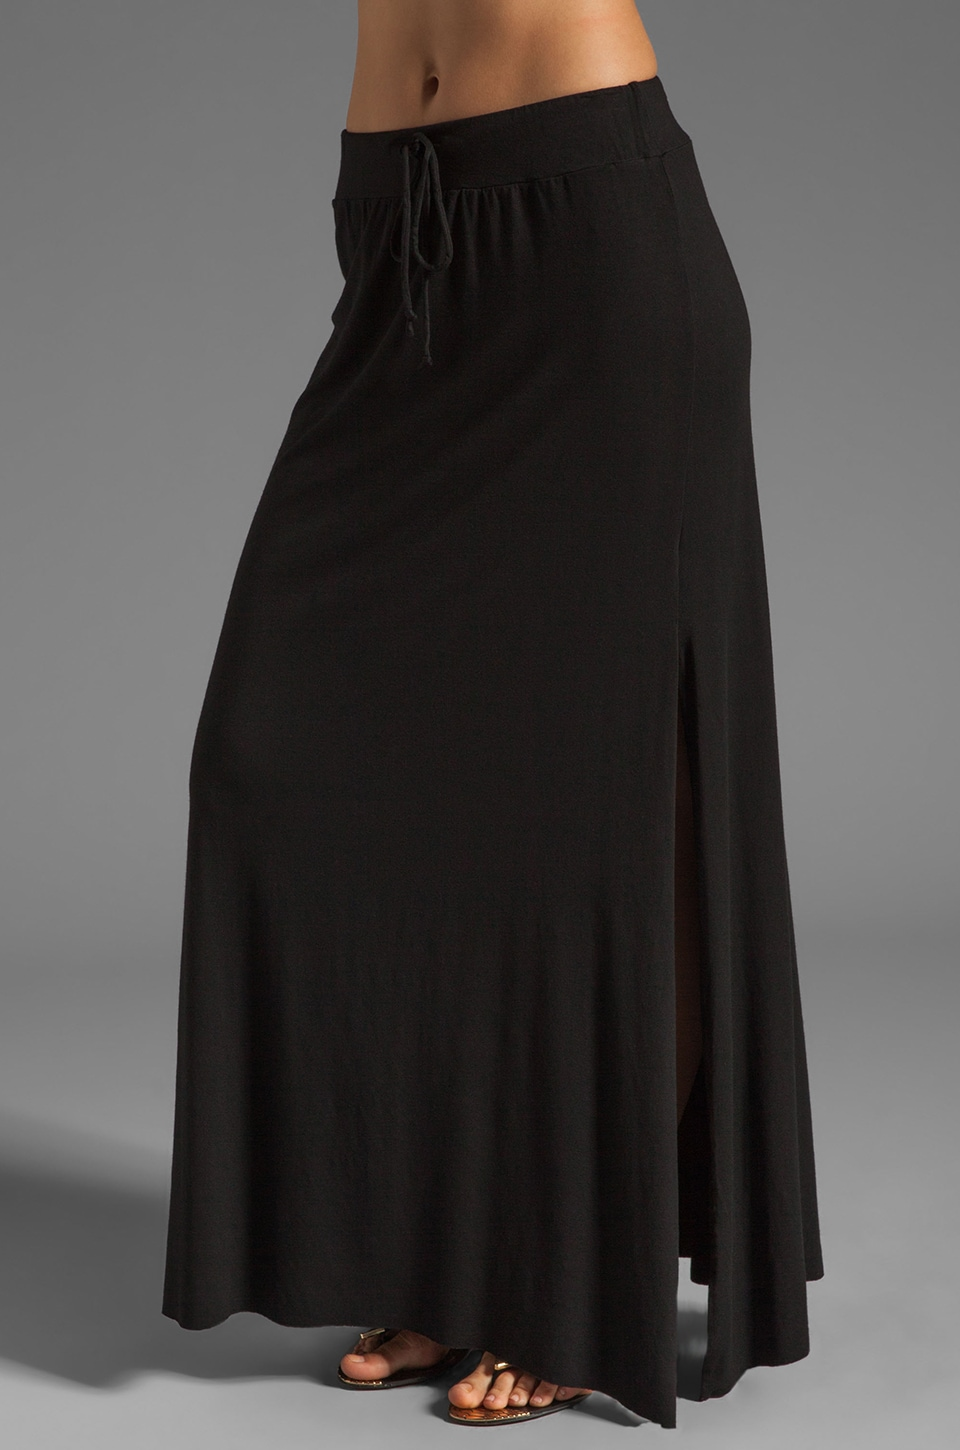 Feel the Piece Draw String Maxi Skirt in Black